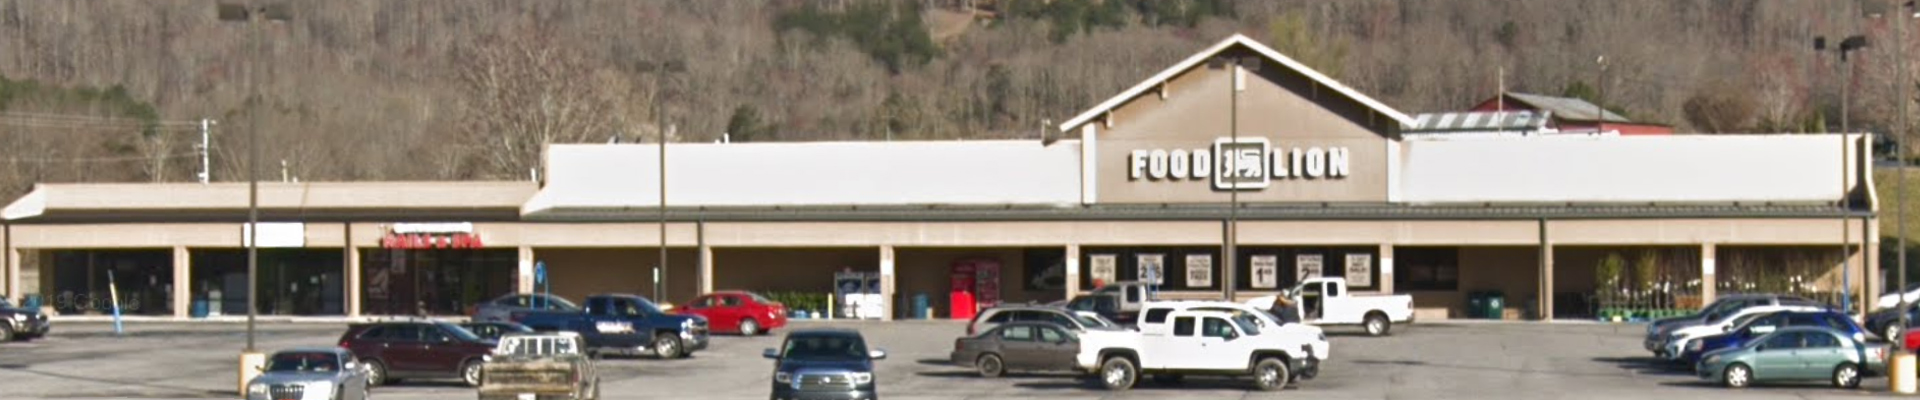 Valley View Shopping Center – LaFollette, Tennessee